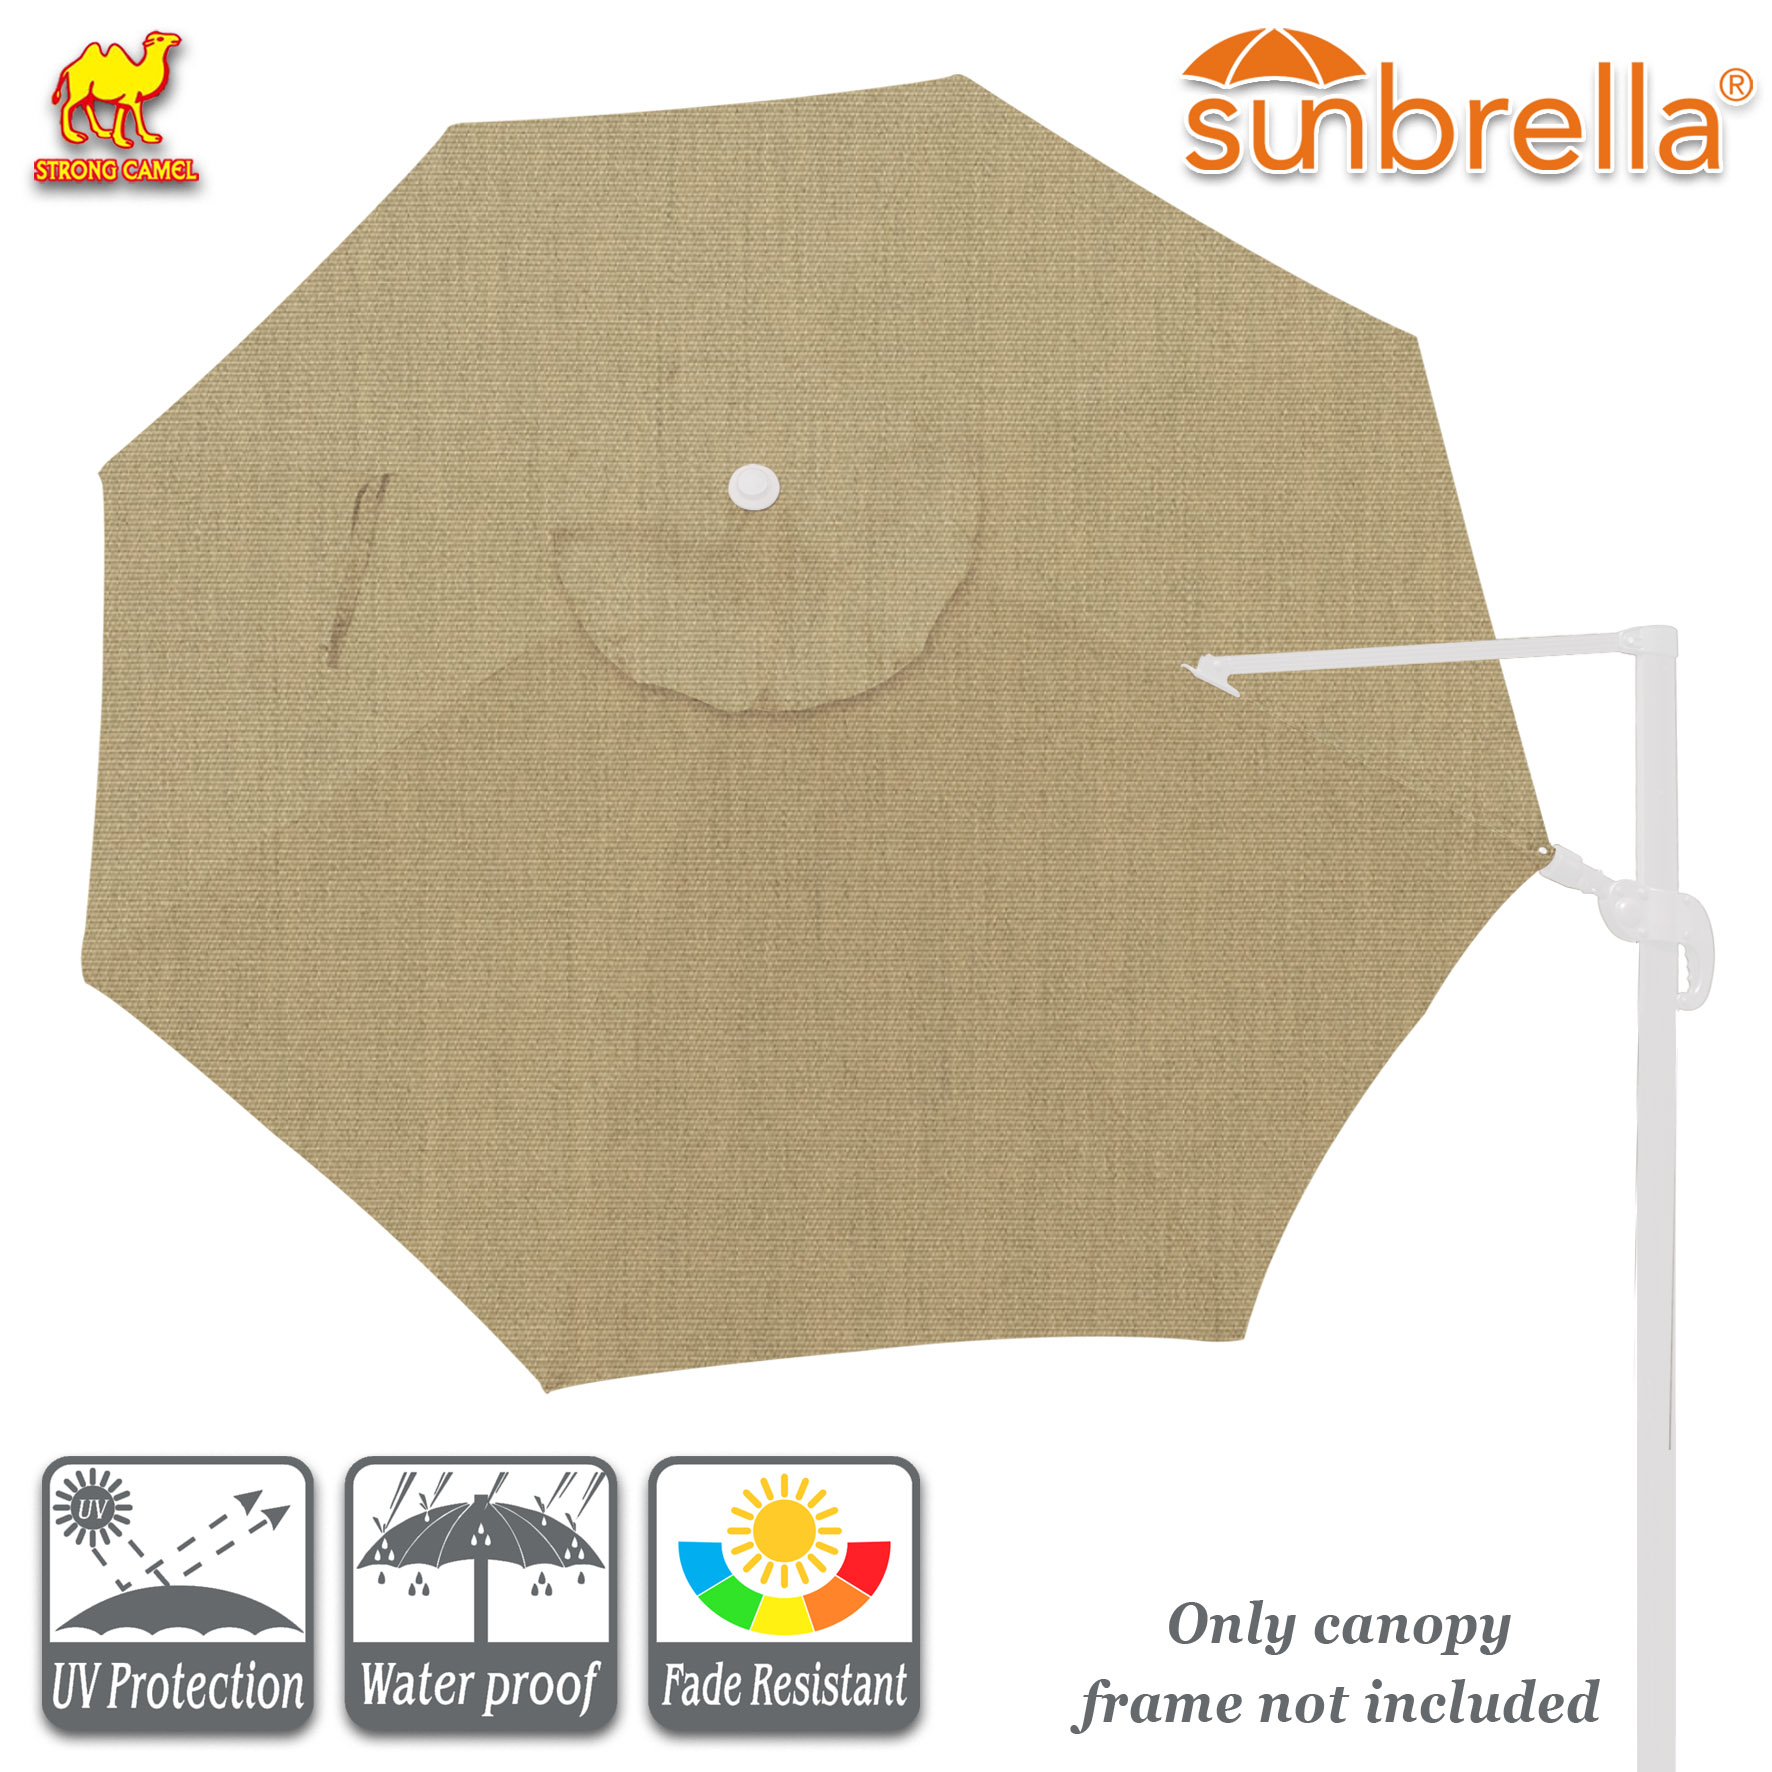 Strong Camel Replacement Canopy for 11.5ft 8 Ribs Rome Cantilever Patio Umbrella Parasol Top Sunbrella Cover